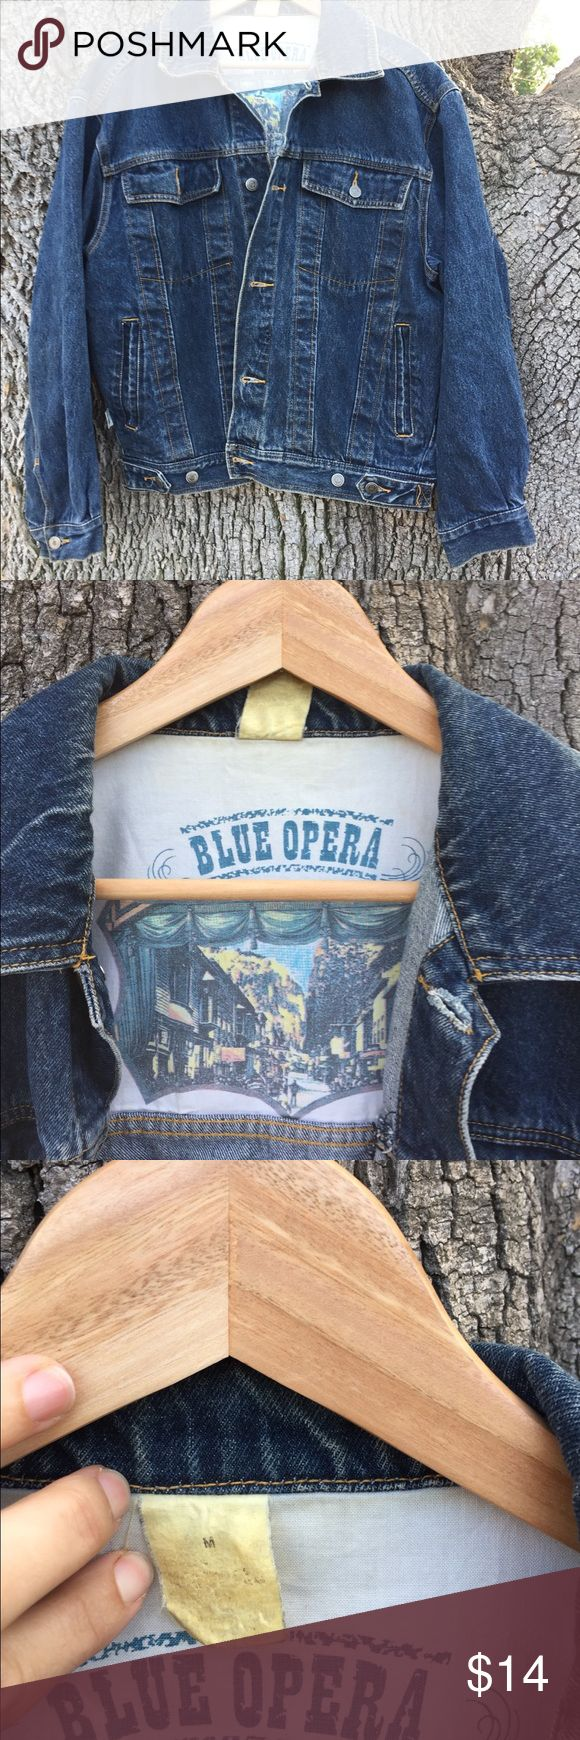 Vintage Blue Opera Mens Jean Jacket Very unique! Well made with lots of details. Can be worn by women for an oversized vintage jean jacket look or by men for vintage look. Blue Opera Jackets & Coats Jean Jackets